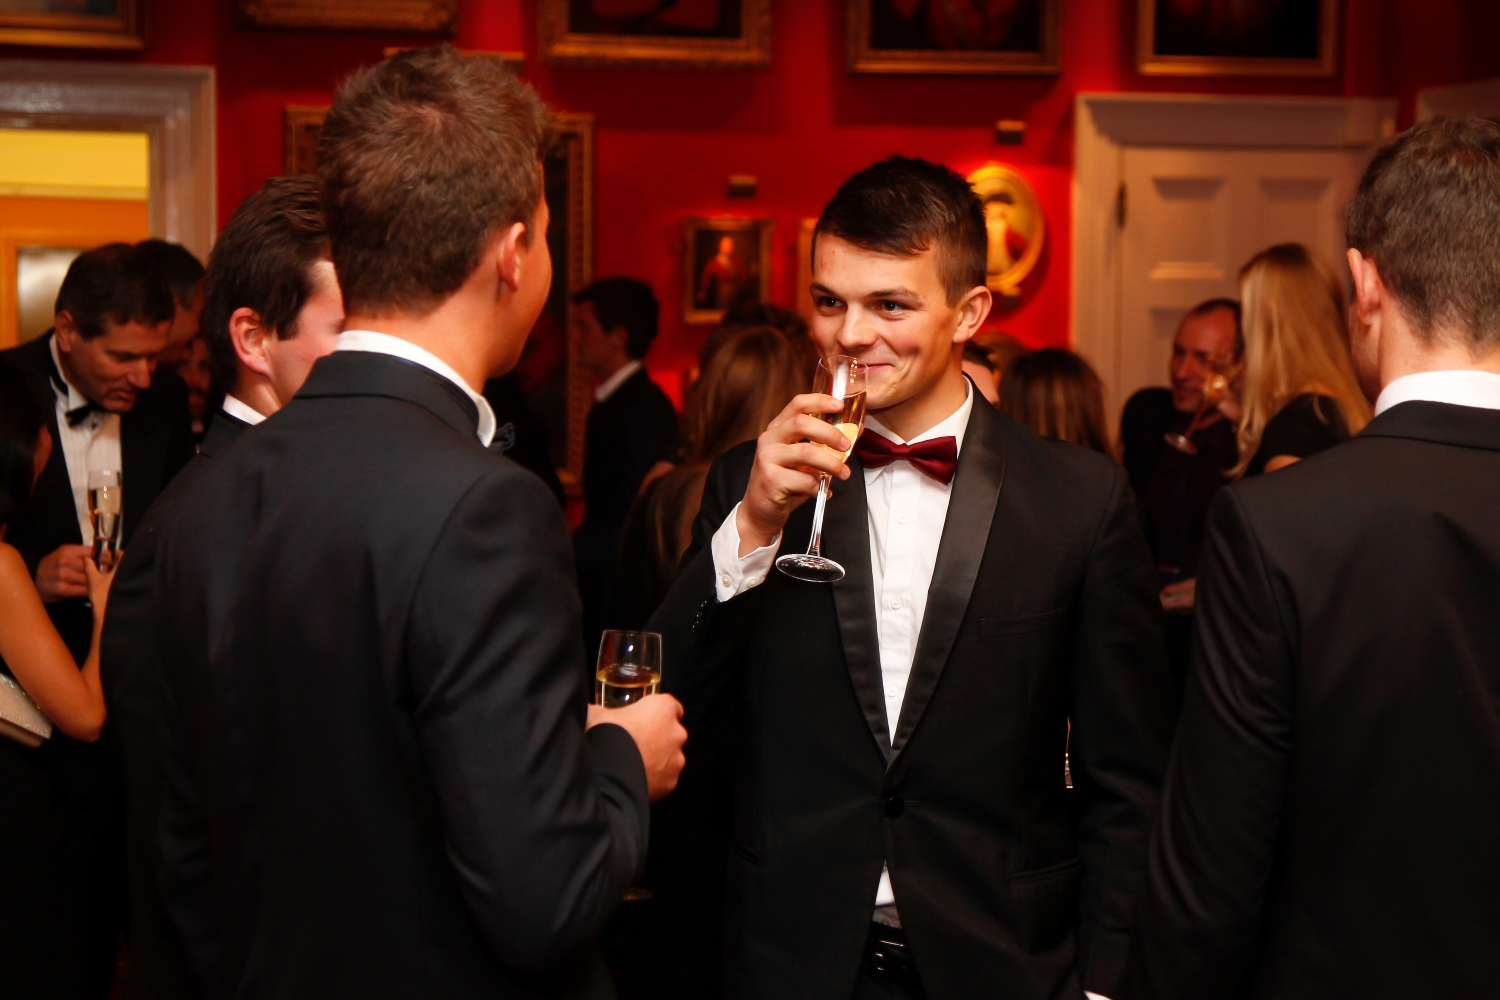 A fantastic evening with many friends new and old at the British Sailing Team Awards Dinner.